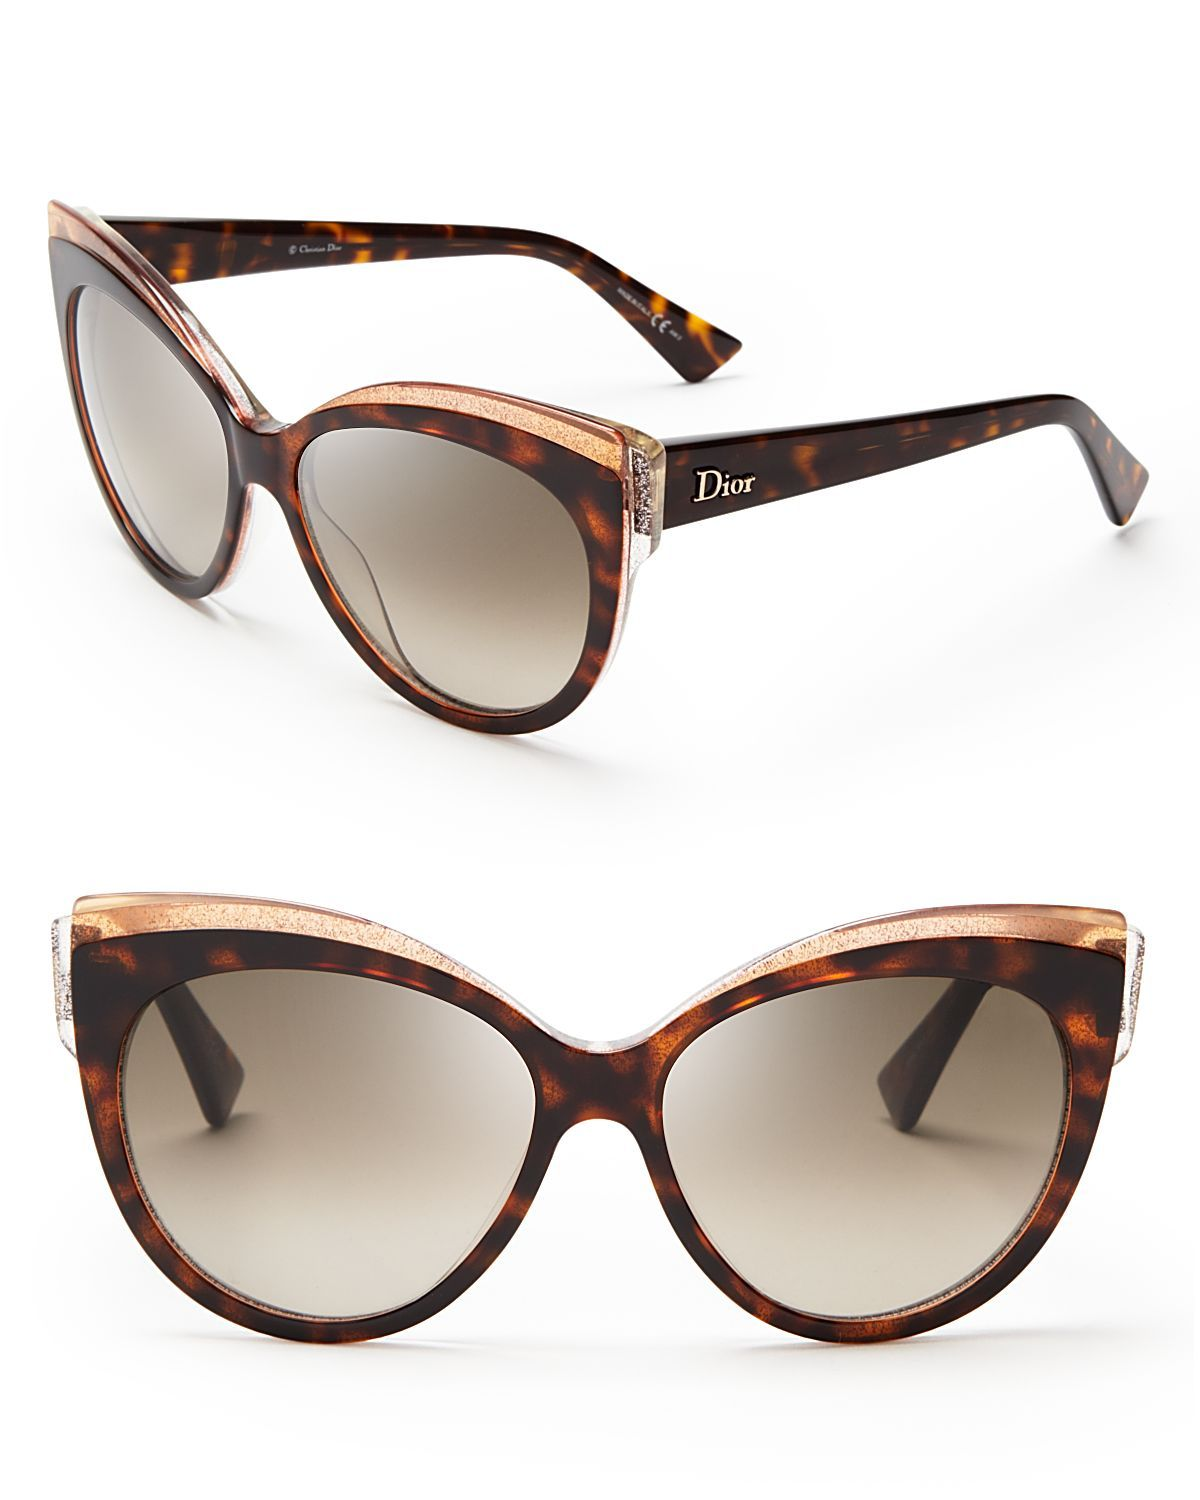 c5ab10c431 dior-brown-glisten-cat-eye-sunglasses